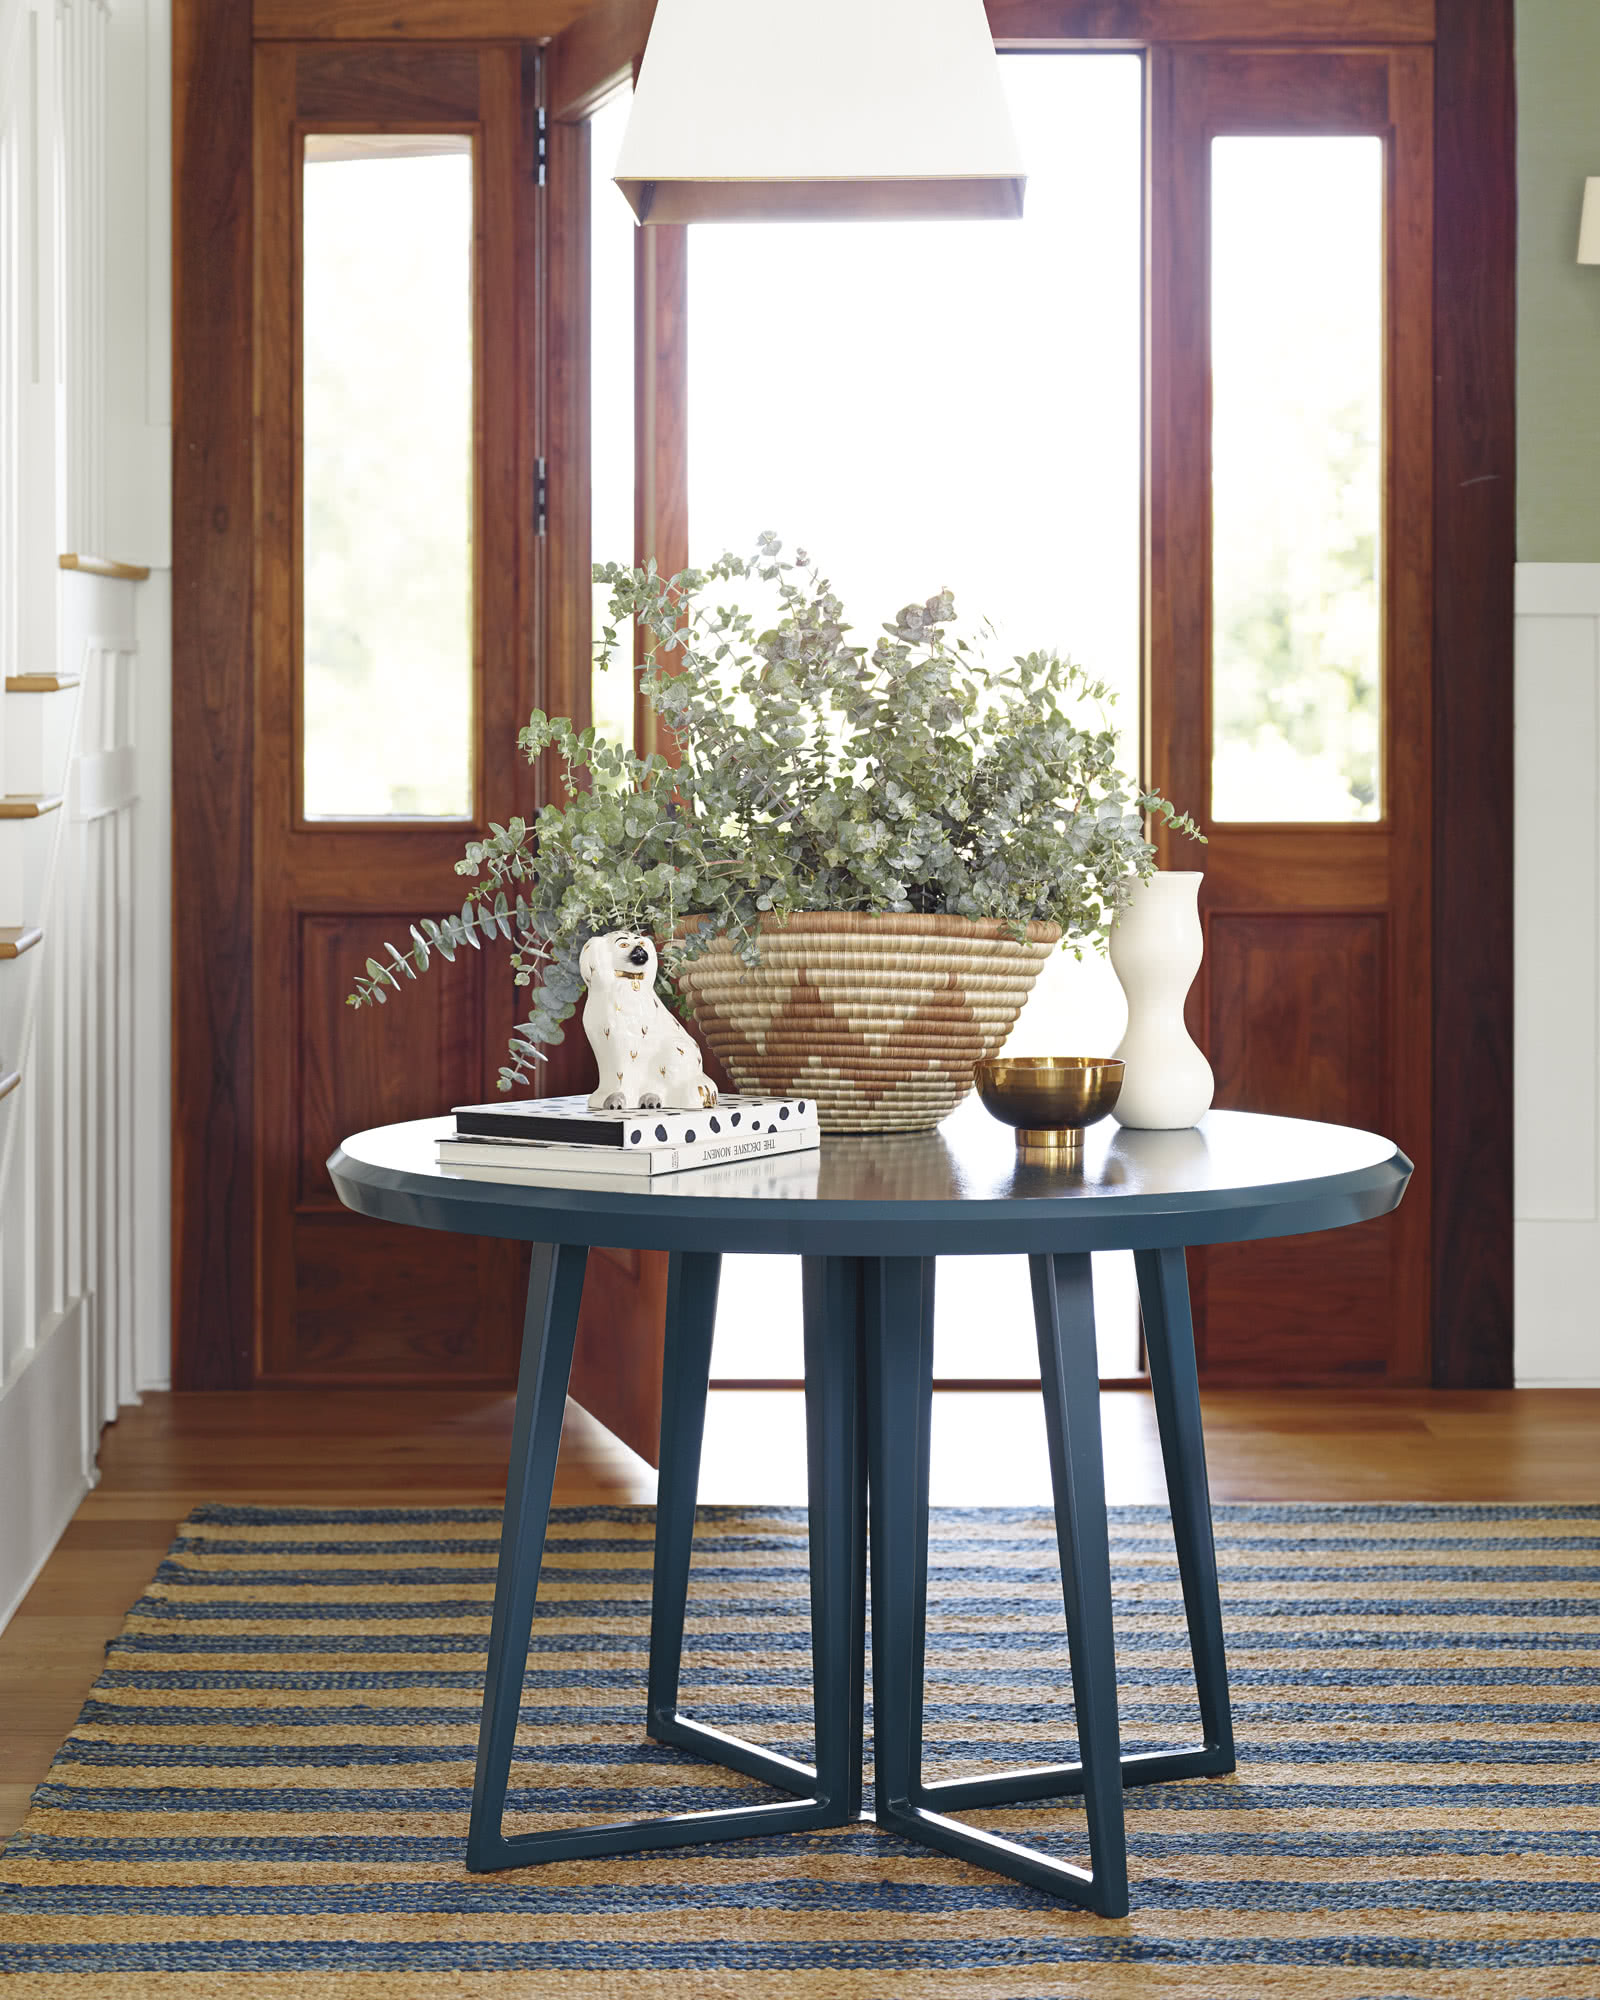 Serena Lily Love The Burlap Look Of The: Downing Dining Table